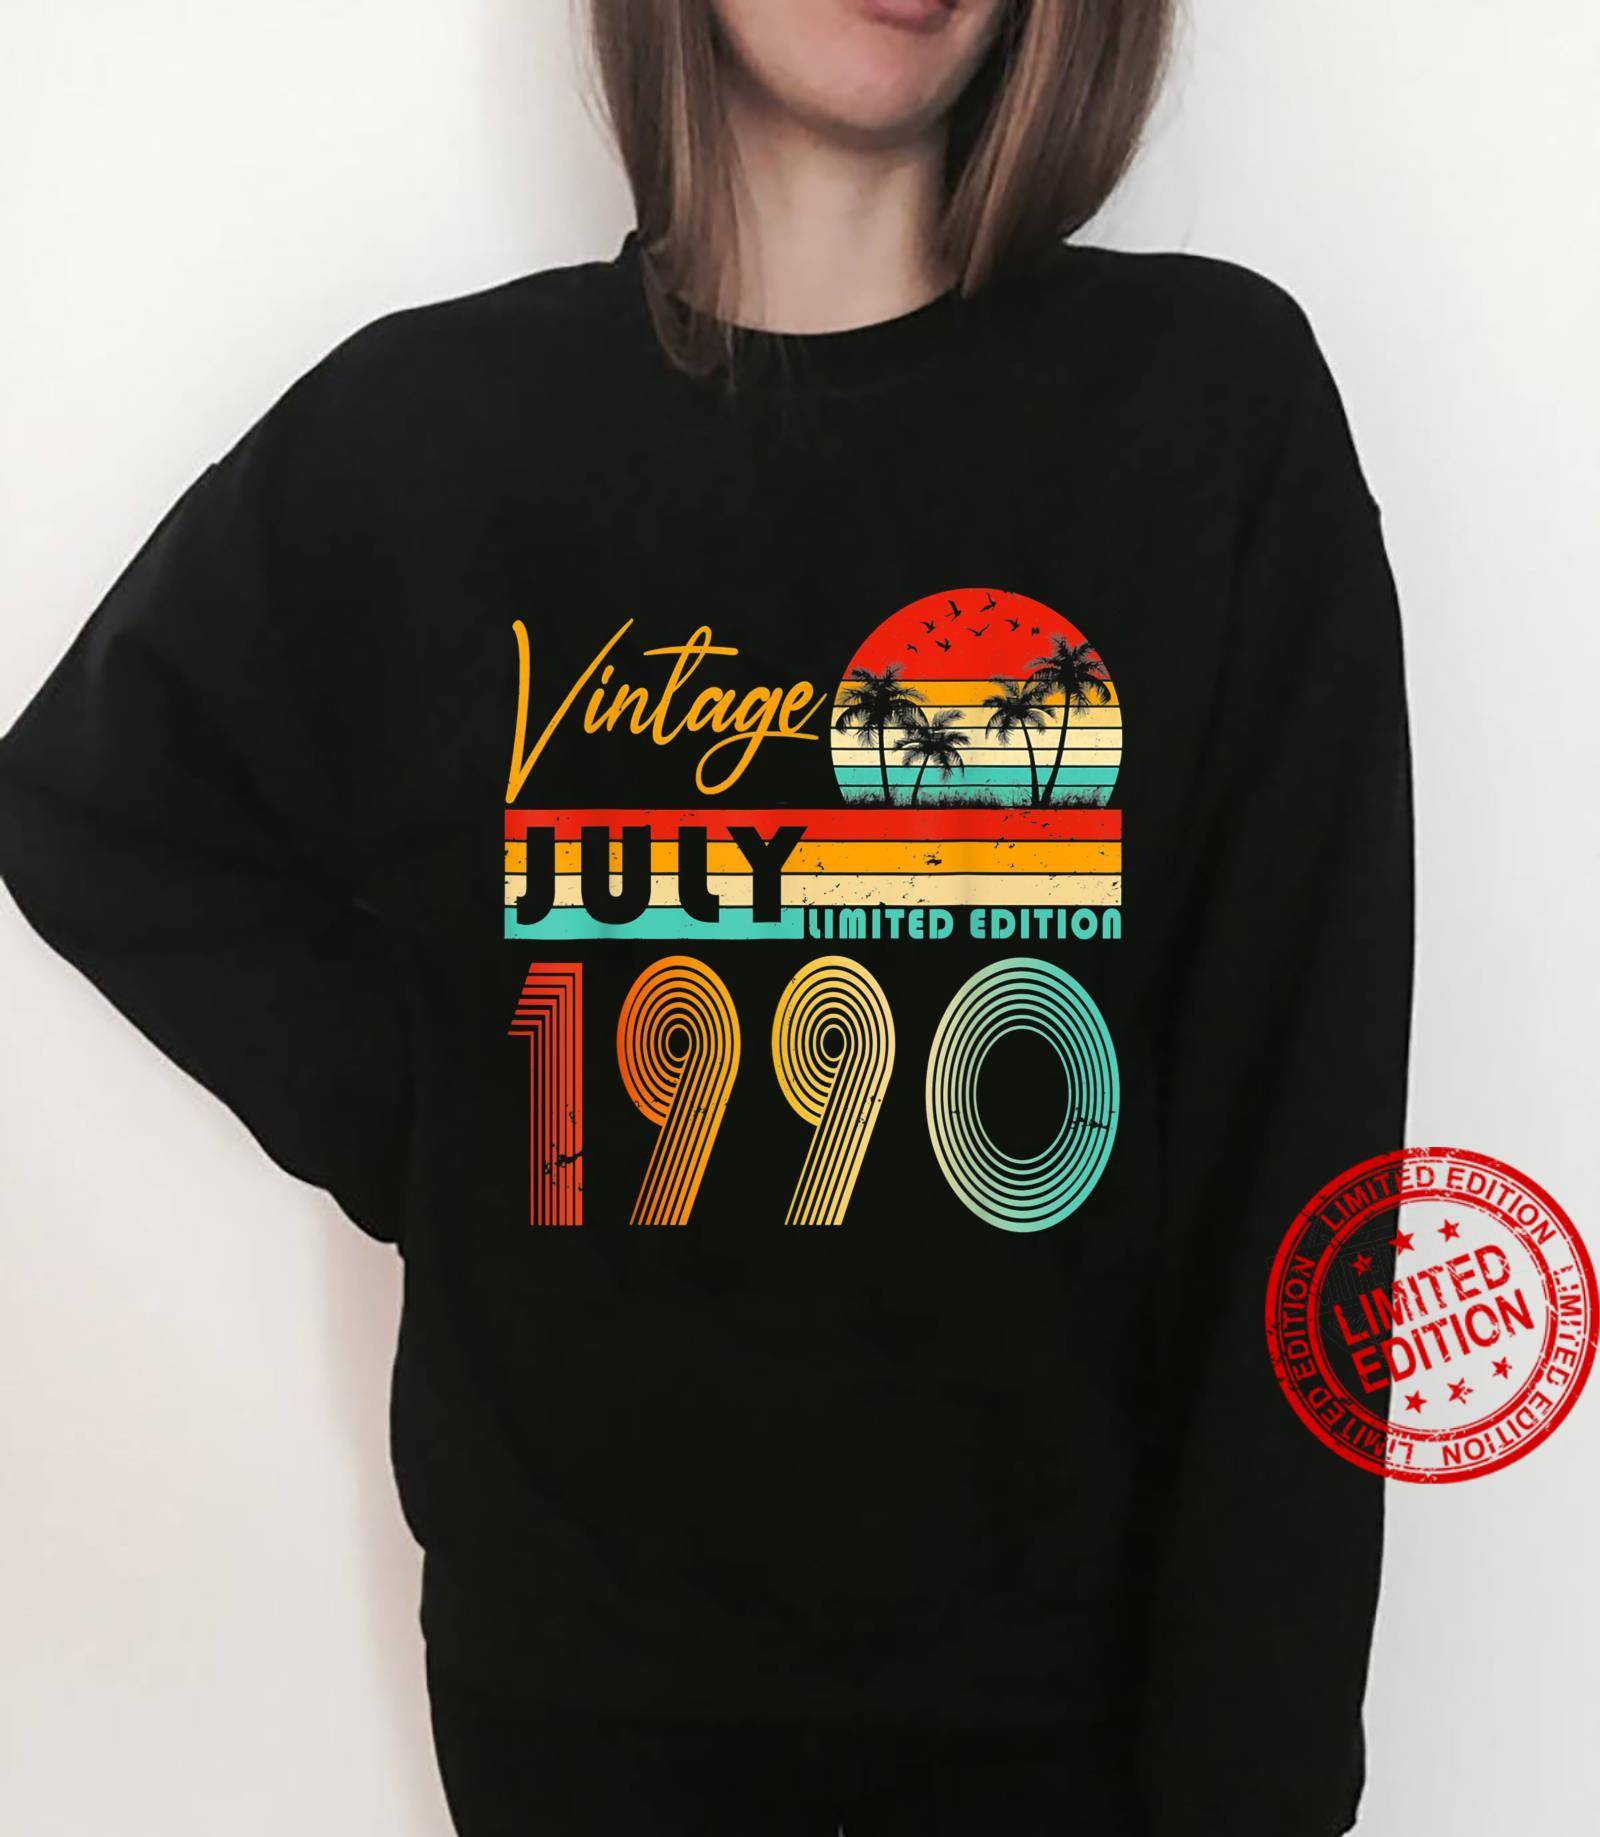 Happy 31st Birthday Vintage July 1990 Shirt 31 Years Old Shirt sweater